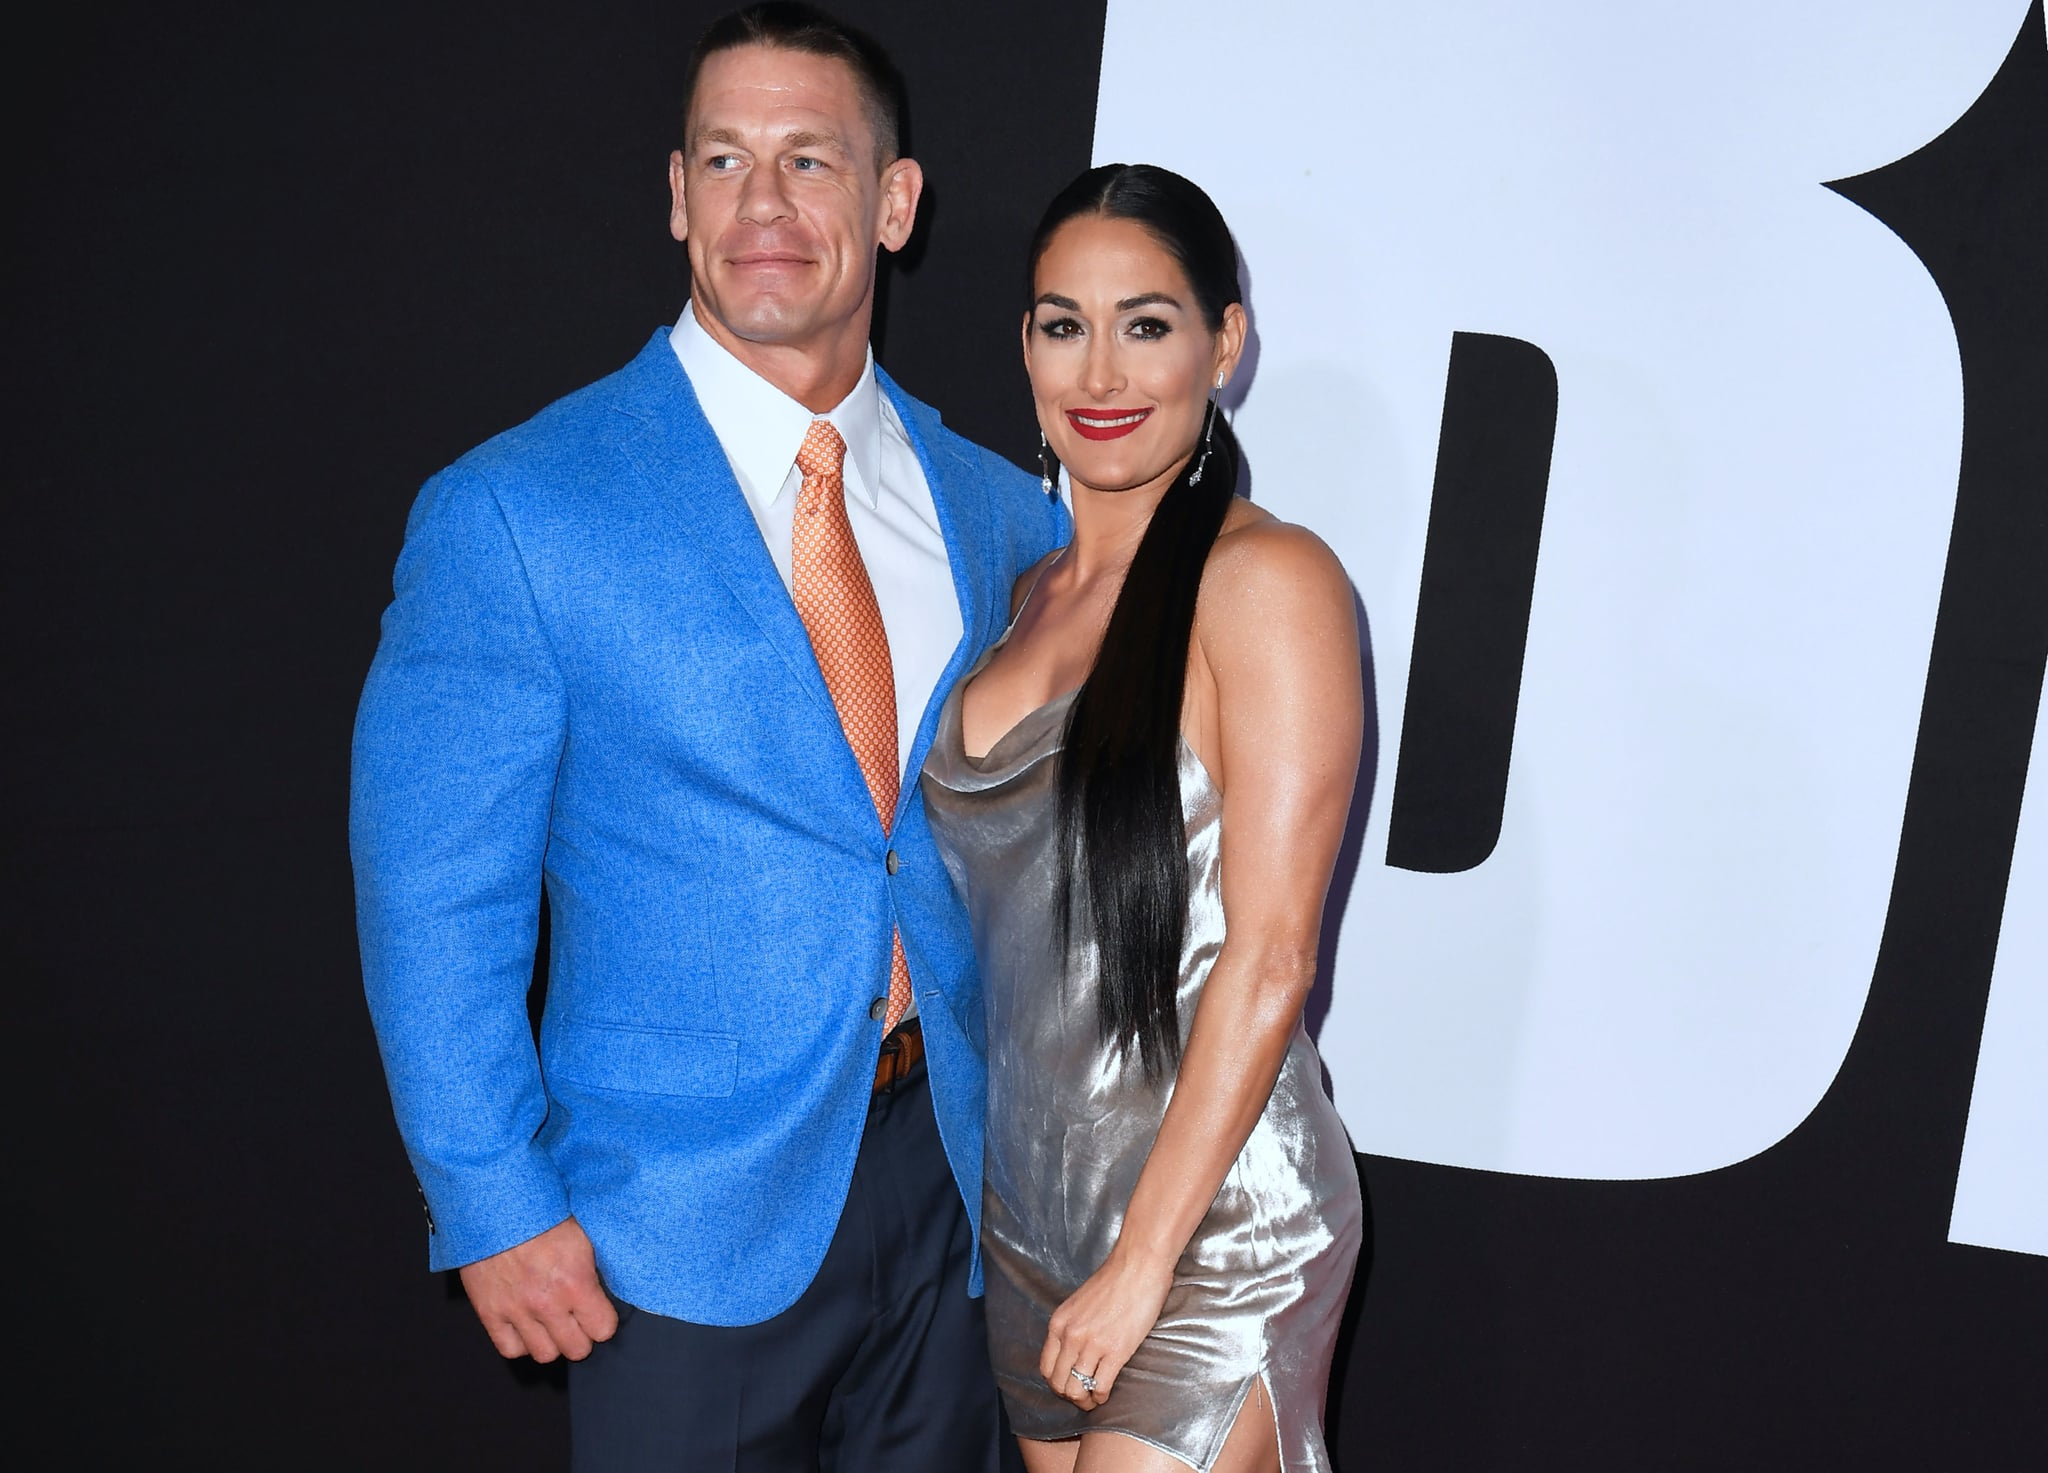 John Cena and Nikki Bella arrive for the premiere of